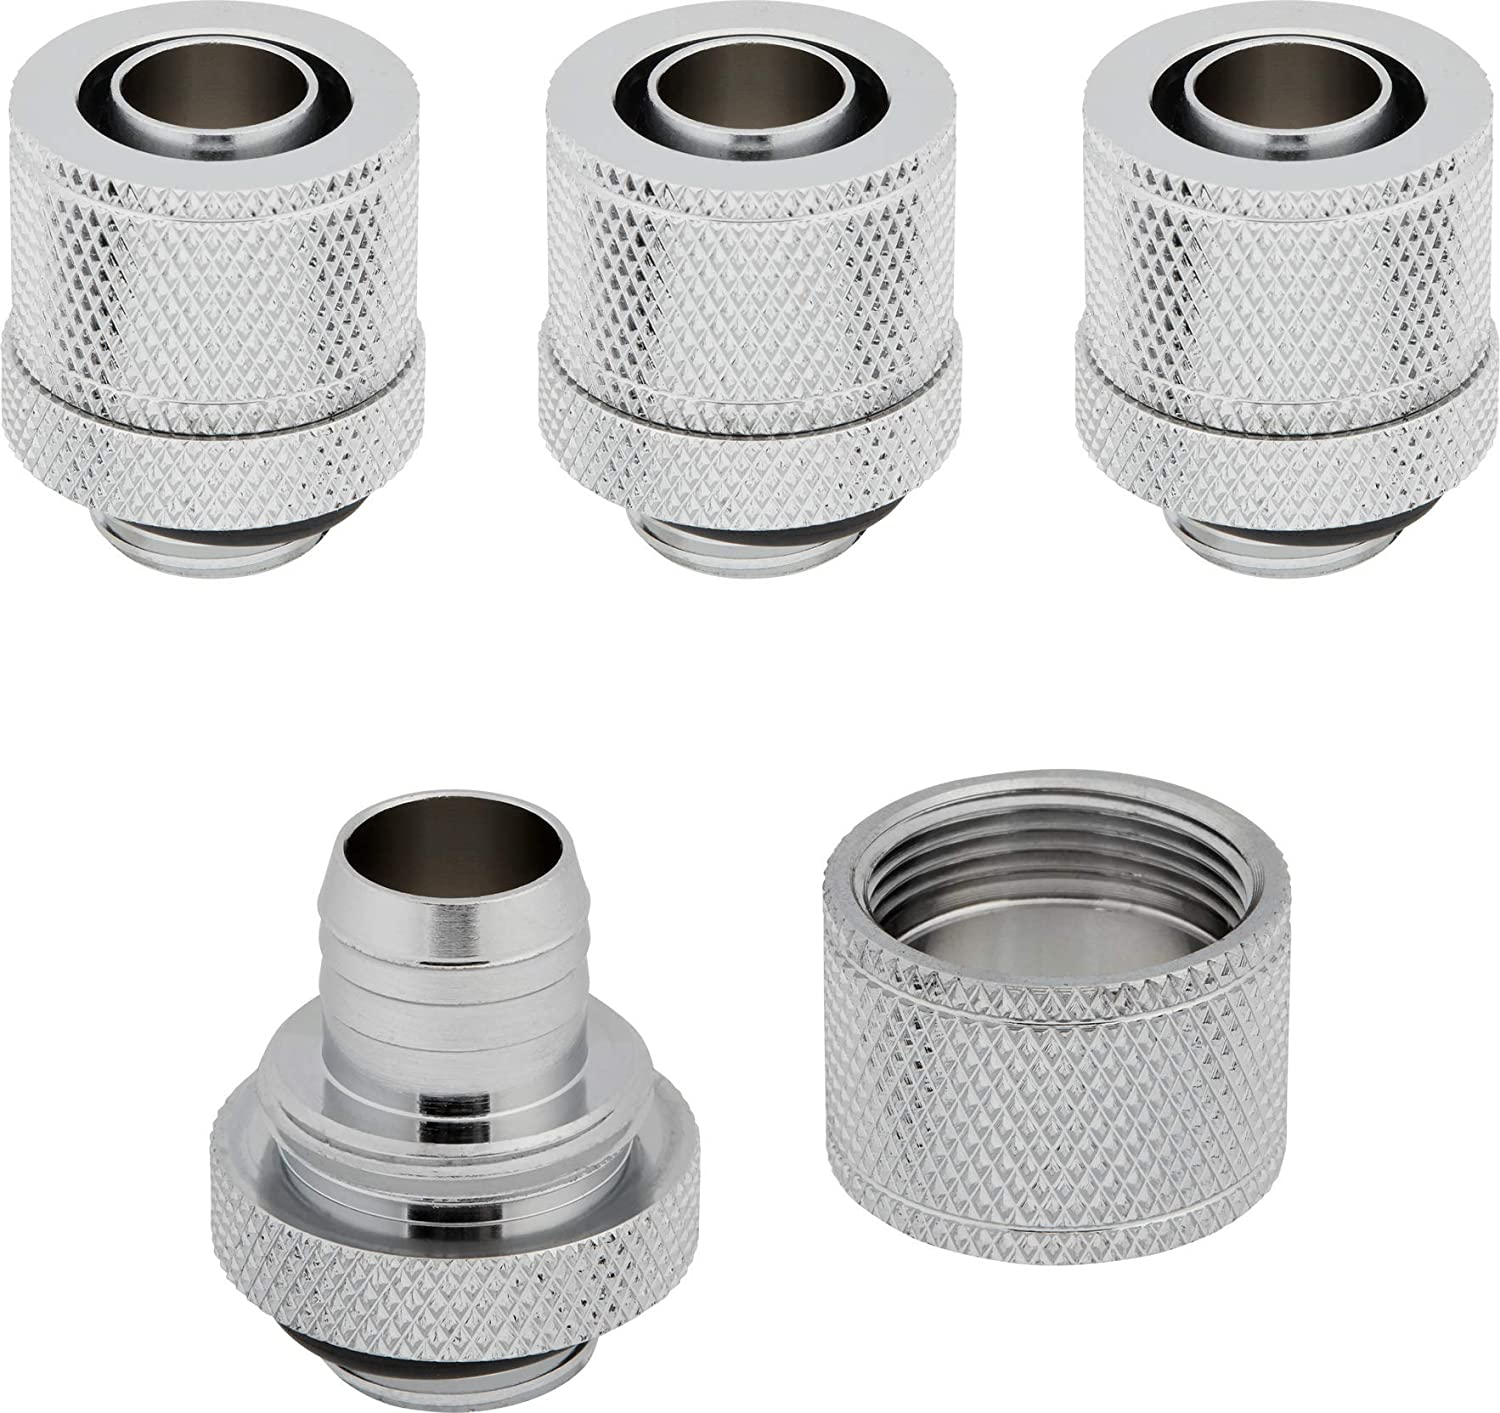 """Corsair Hydro X Series XF Compression 10/13mm (3/8"""" / 1/2"""") ID/OD Fittings, Chrome, 4-Pack"""